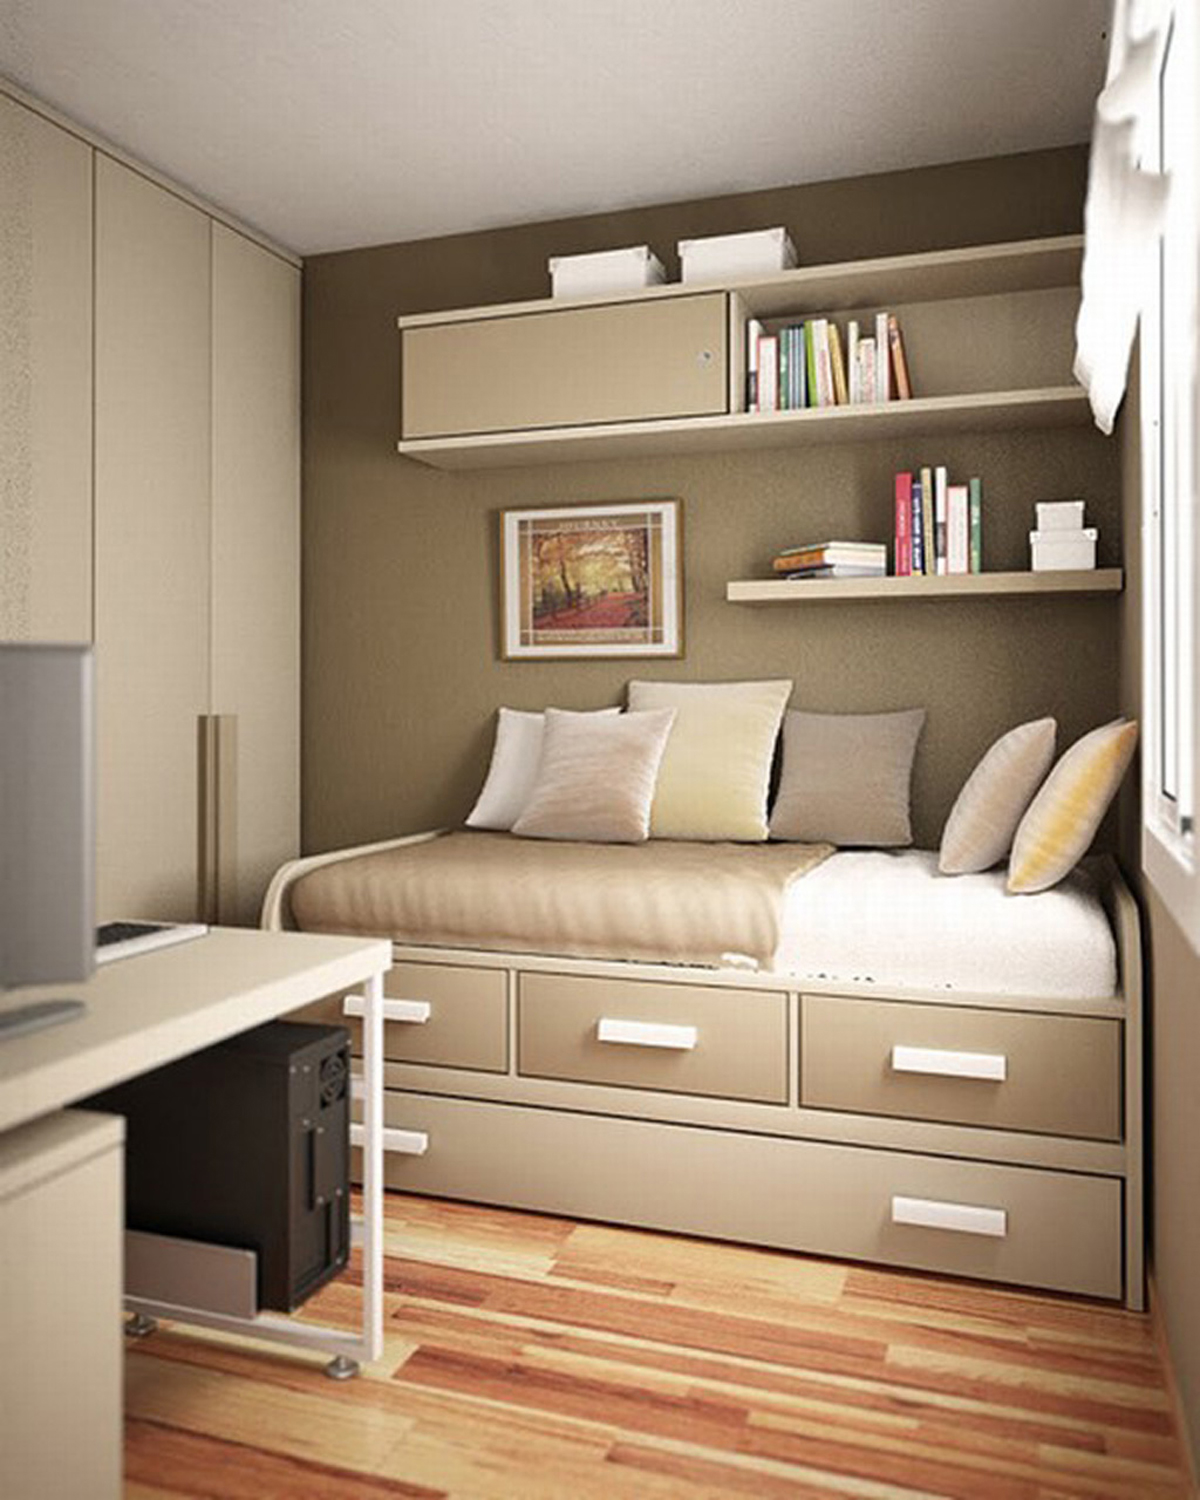 ... For Small Contemporary Bedroom Ideas. In The End This Is Your Bedroom  And You Are The One Who Has To Live In It, So You May As Well Love It. Good  Luck!